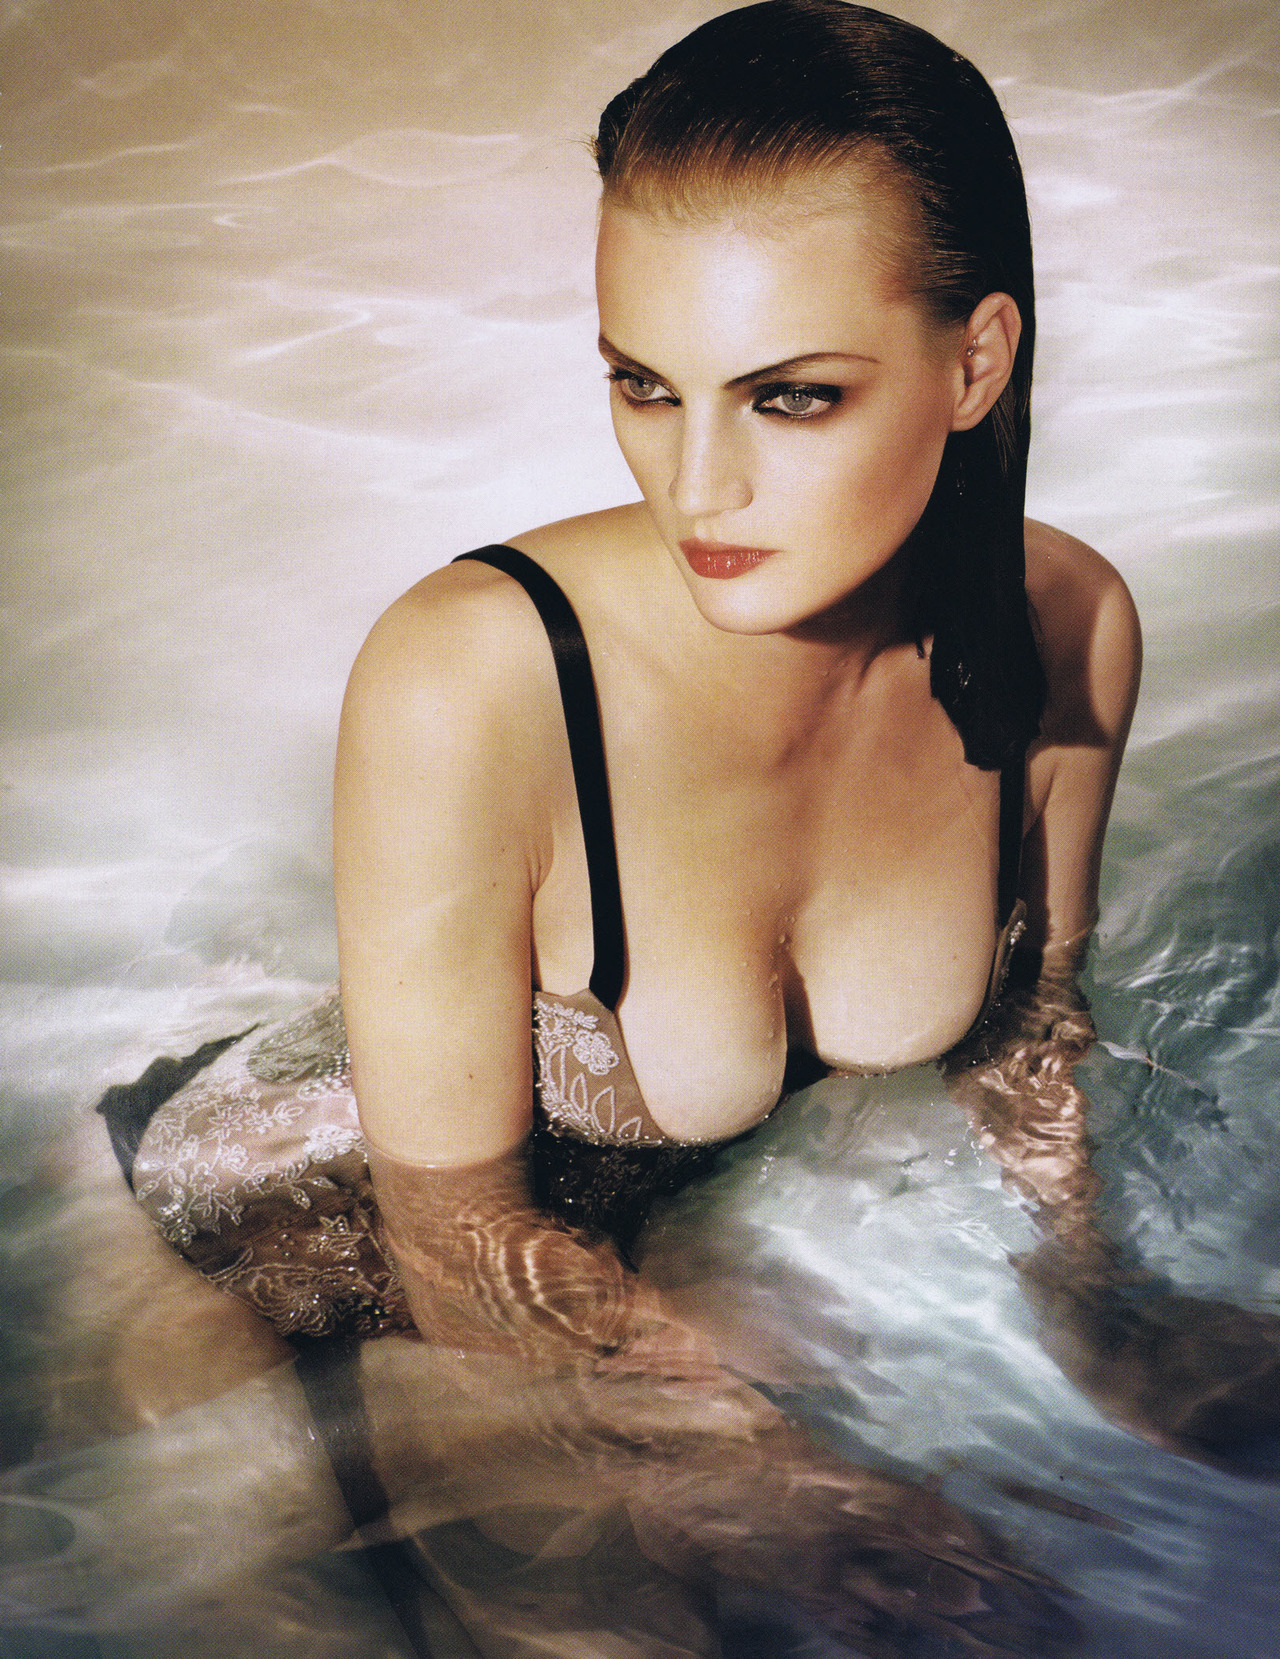 pussylequeer:  Guinevere Van Seenus: Naïade - Numéro #58 by Vincent Peters, November 2004